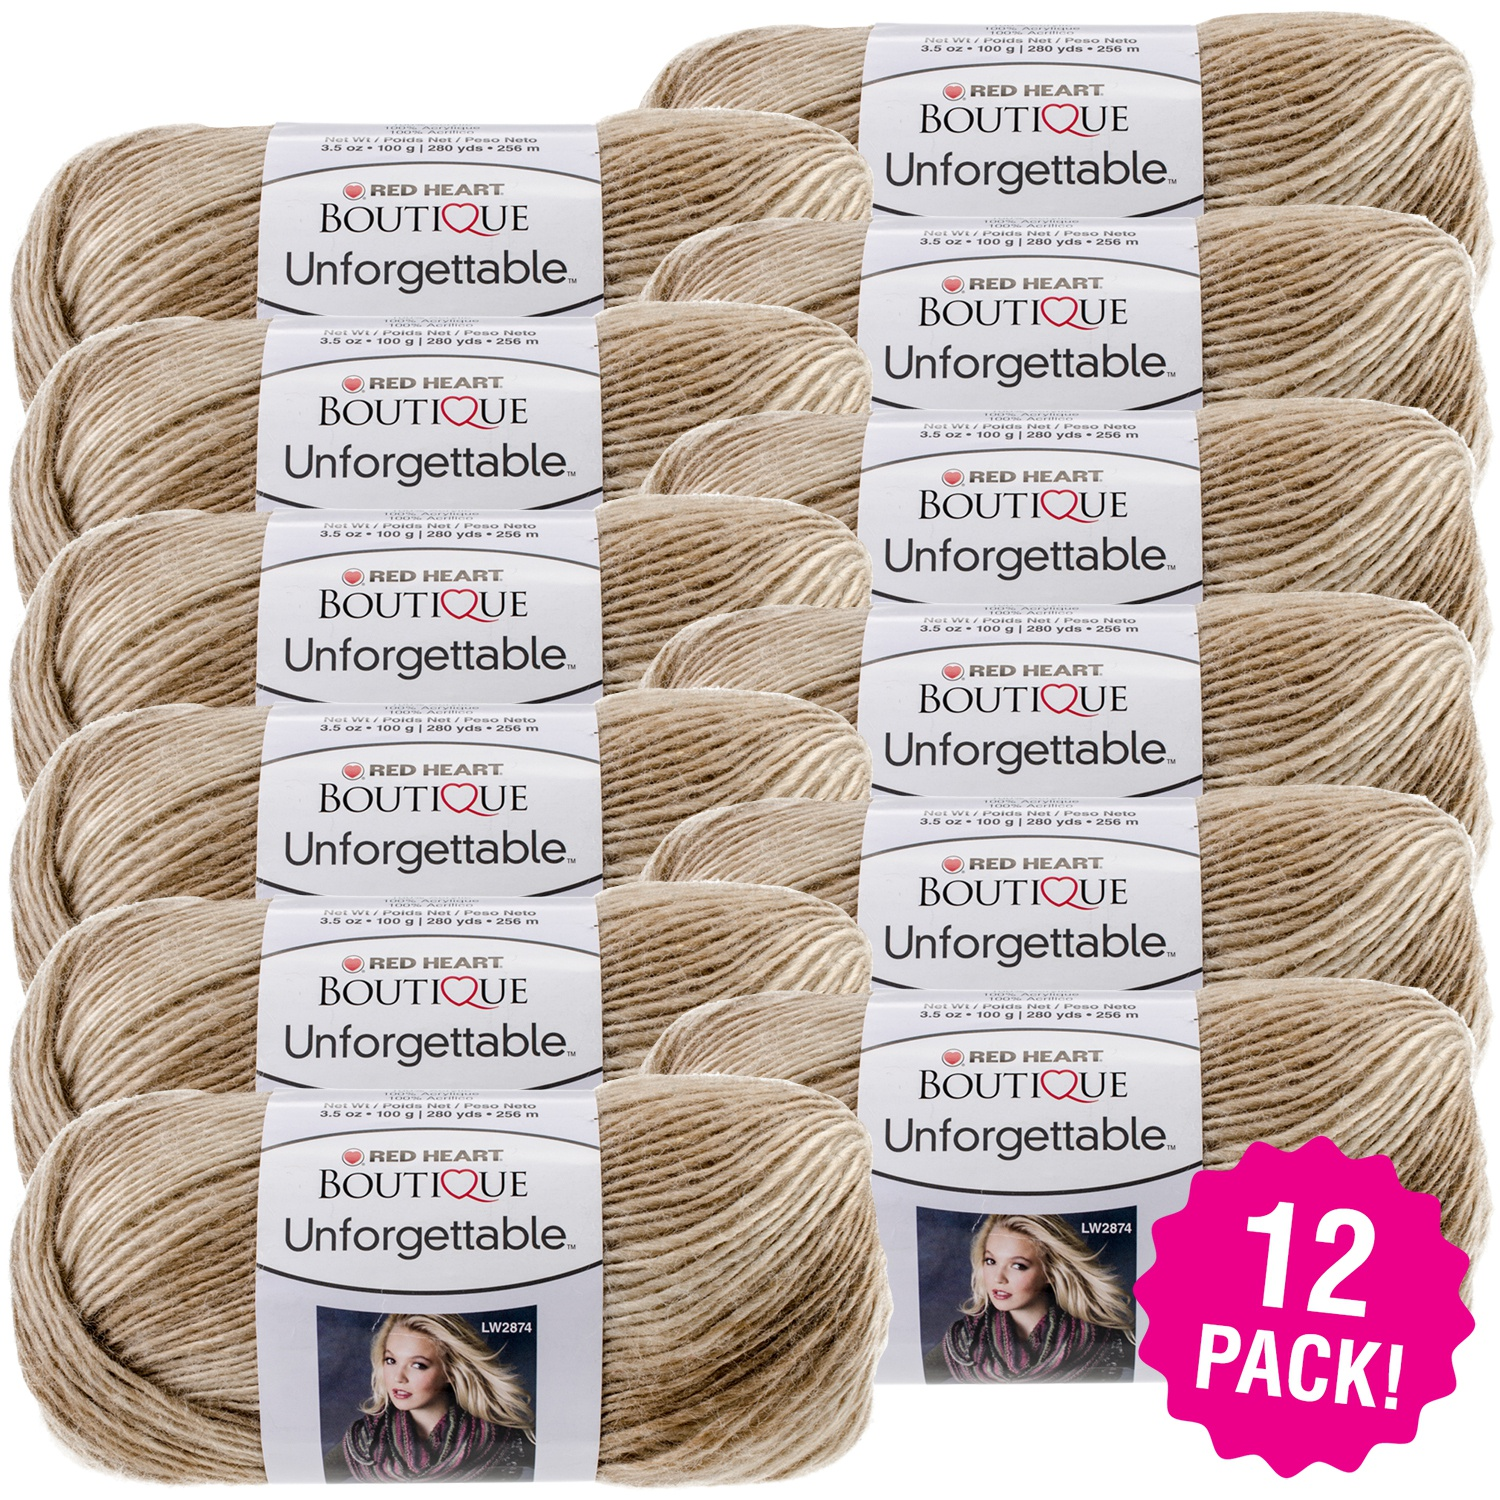 Red Heart Boutique Unforgettable Yarn - Cappuccino, Multipack of 12